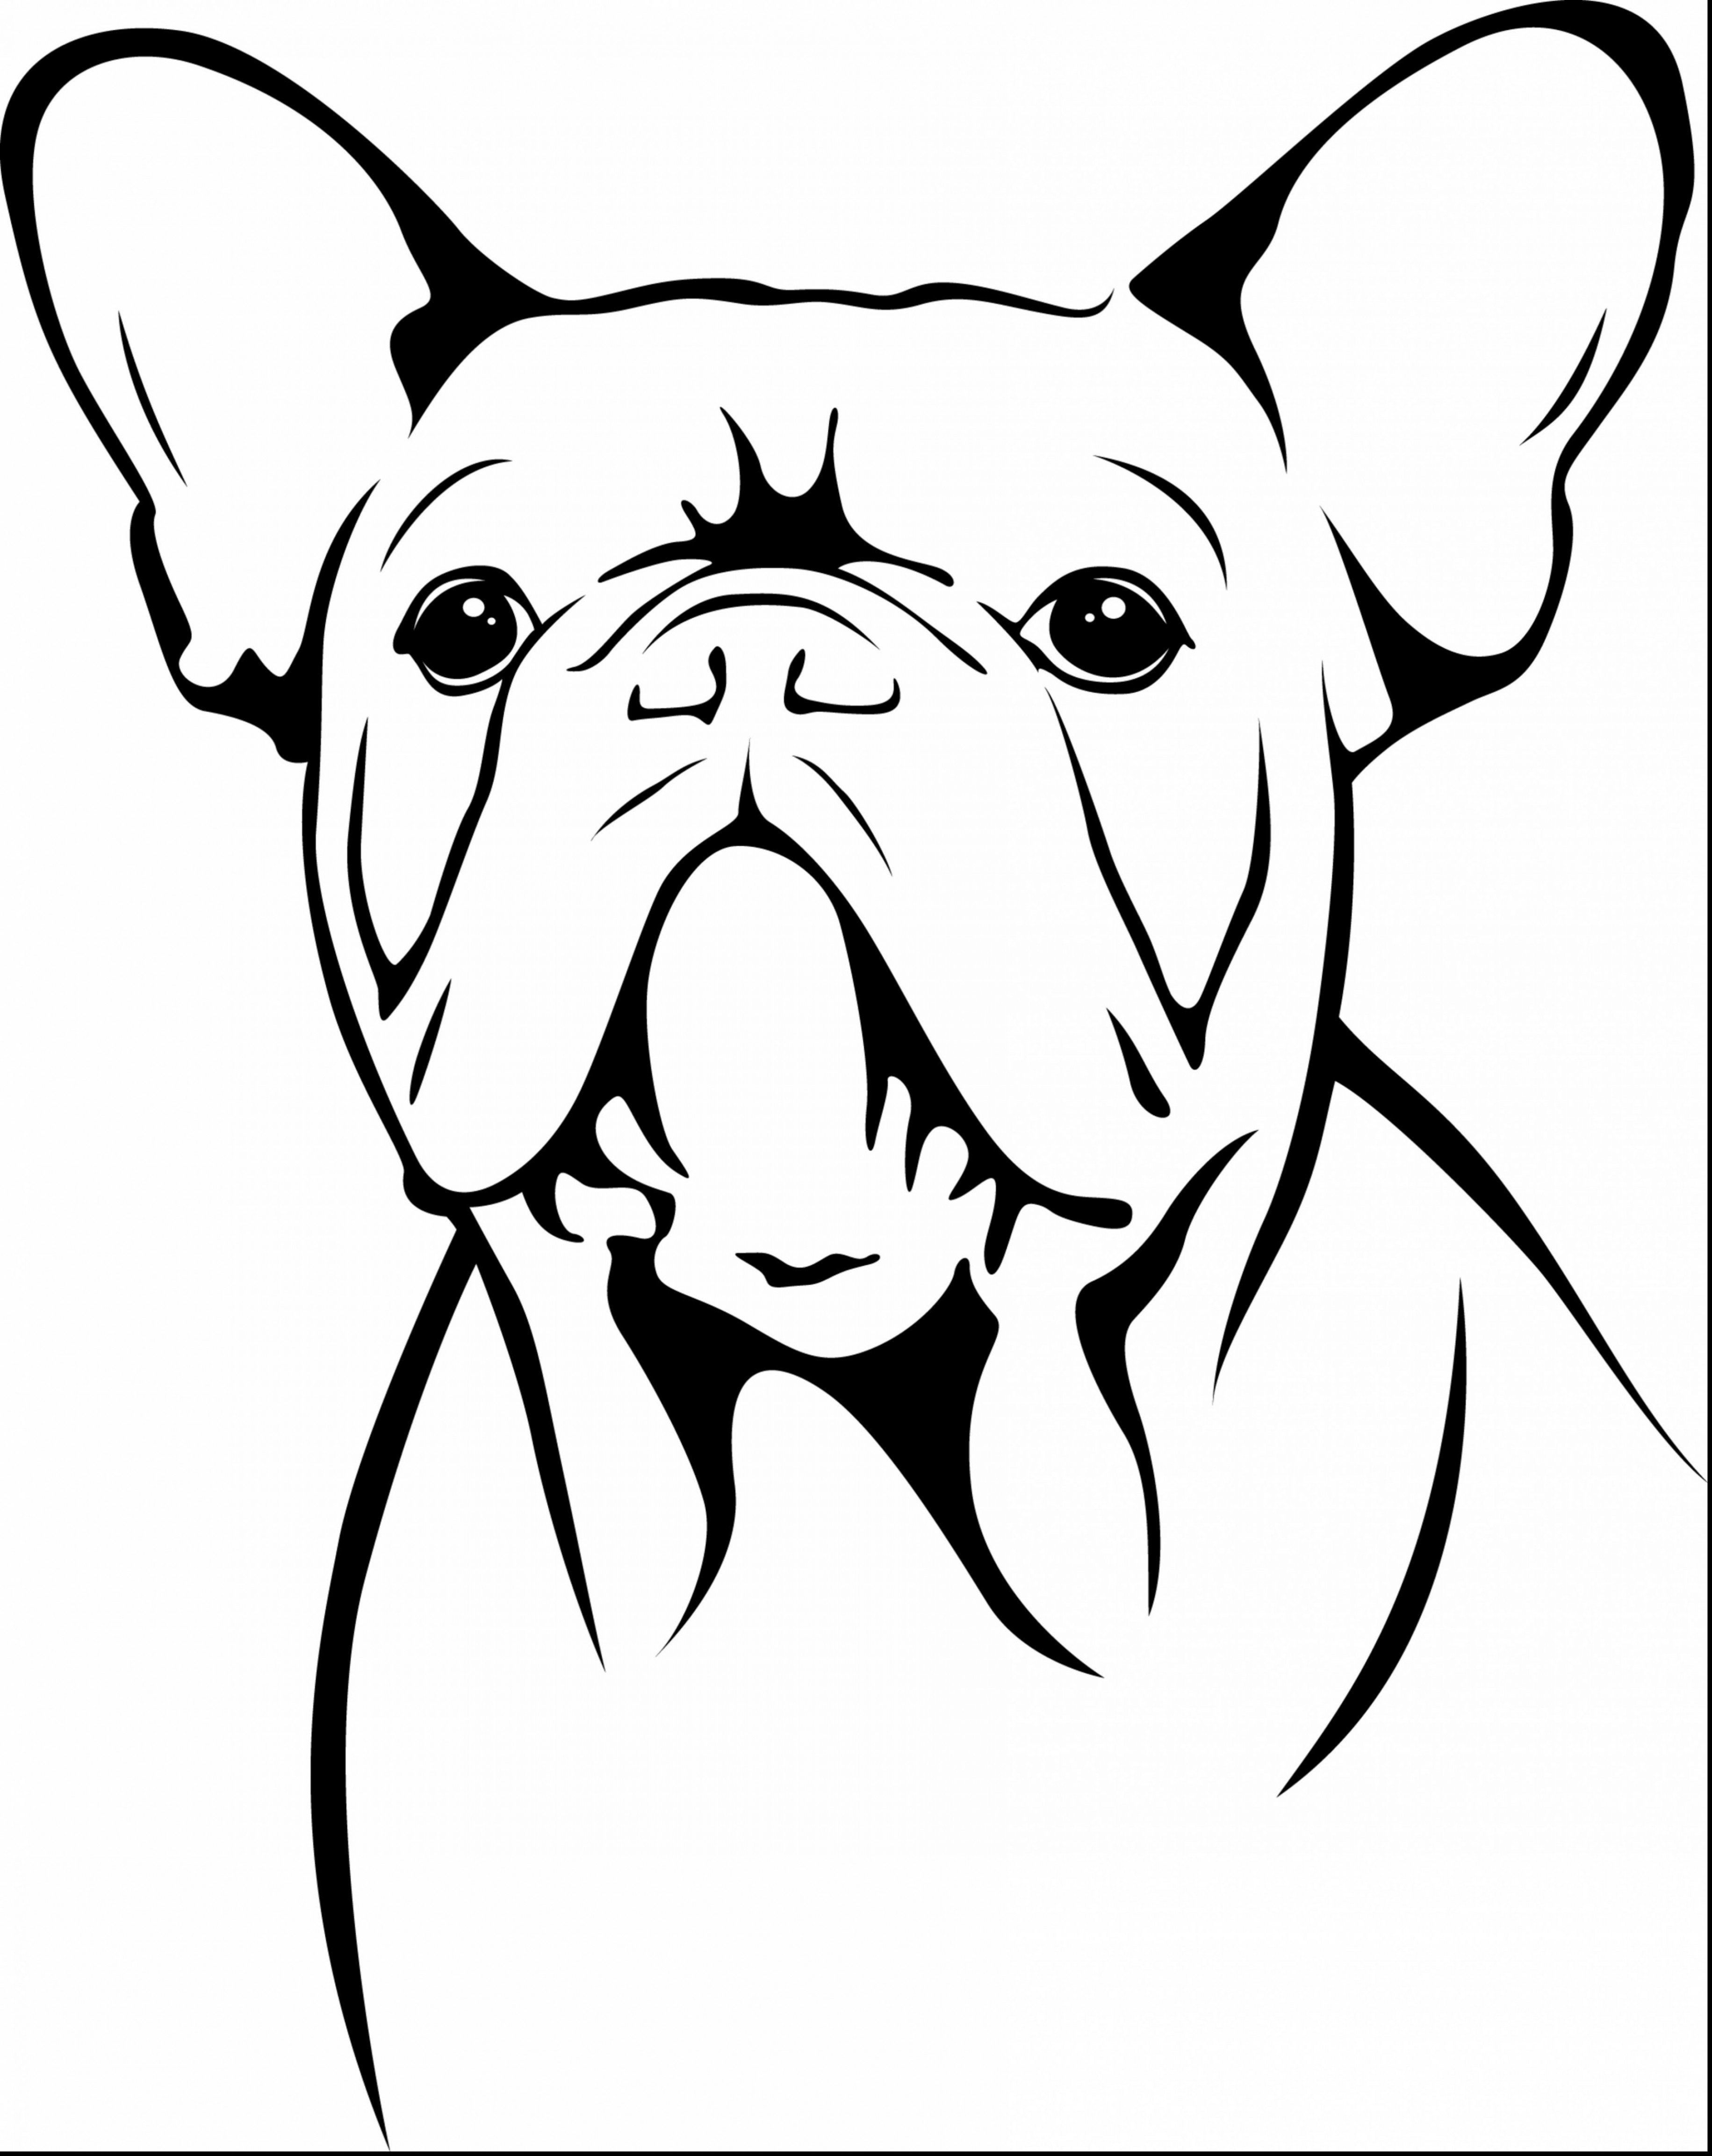 Coloring Pictures Of Dogs Fresh Coloring Page A Dog Yorkie Coloring Pages Lovely Bulldog Dog Coloring Page Animal Coloring Pages Puppy Coloring Pages [ 4613 x 3662 Pixel ]